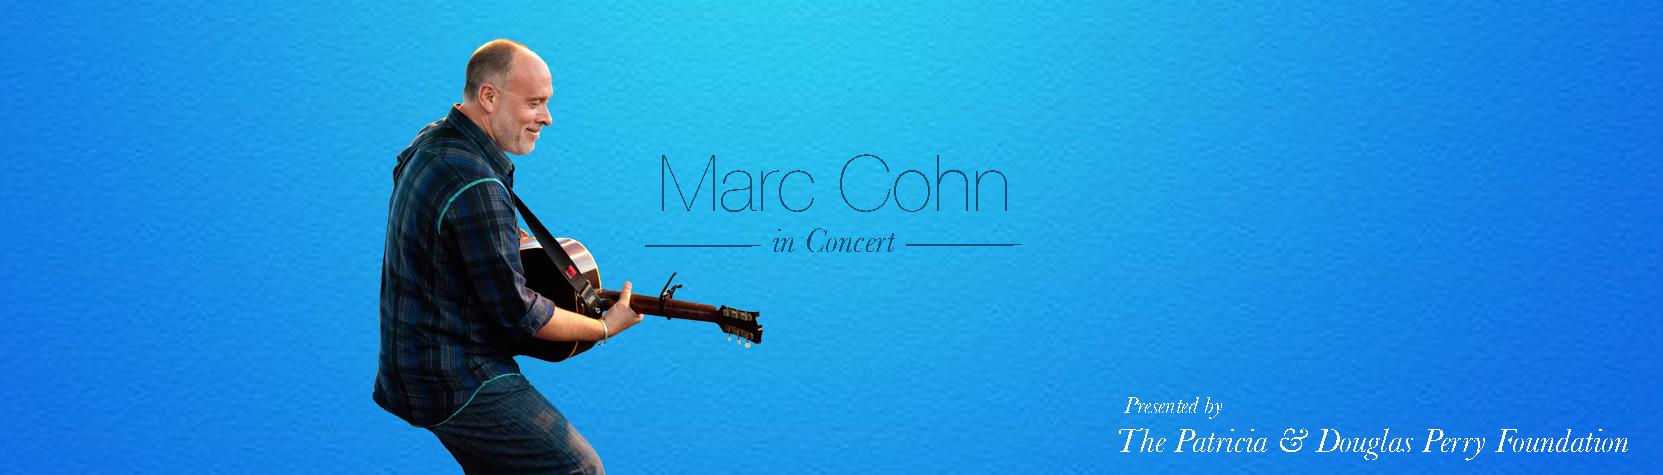 Perry Concert Website Header.png